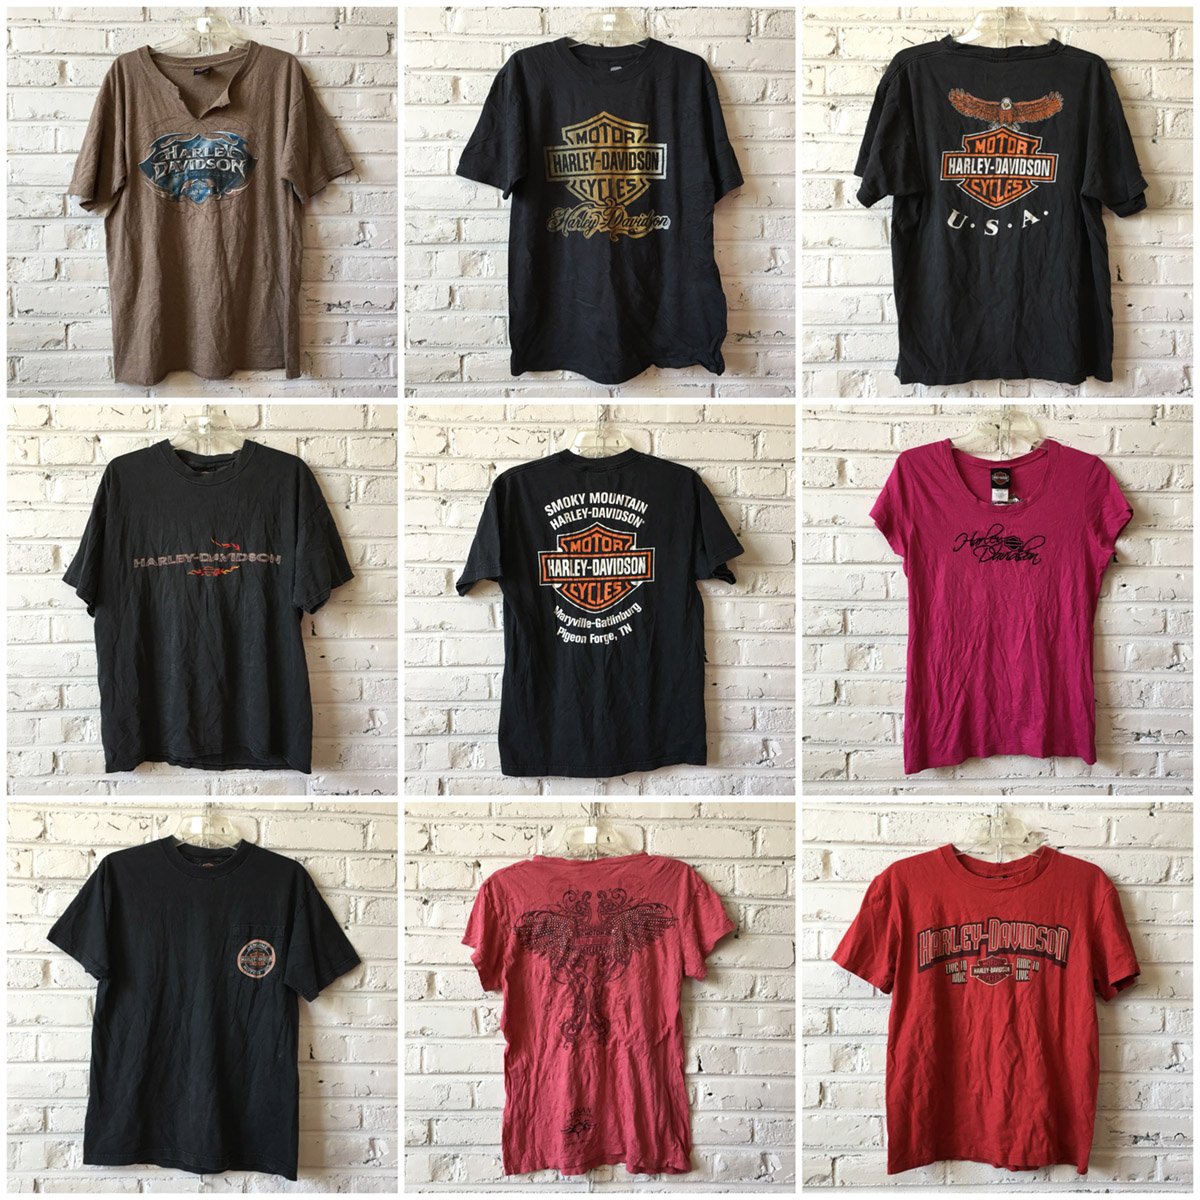 harley davidson t-shirts by the bundle- on backorder: bulk vintage